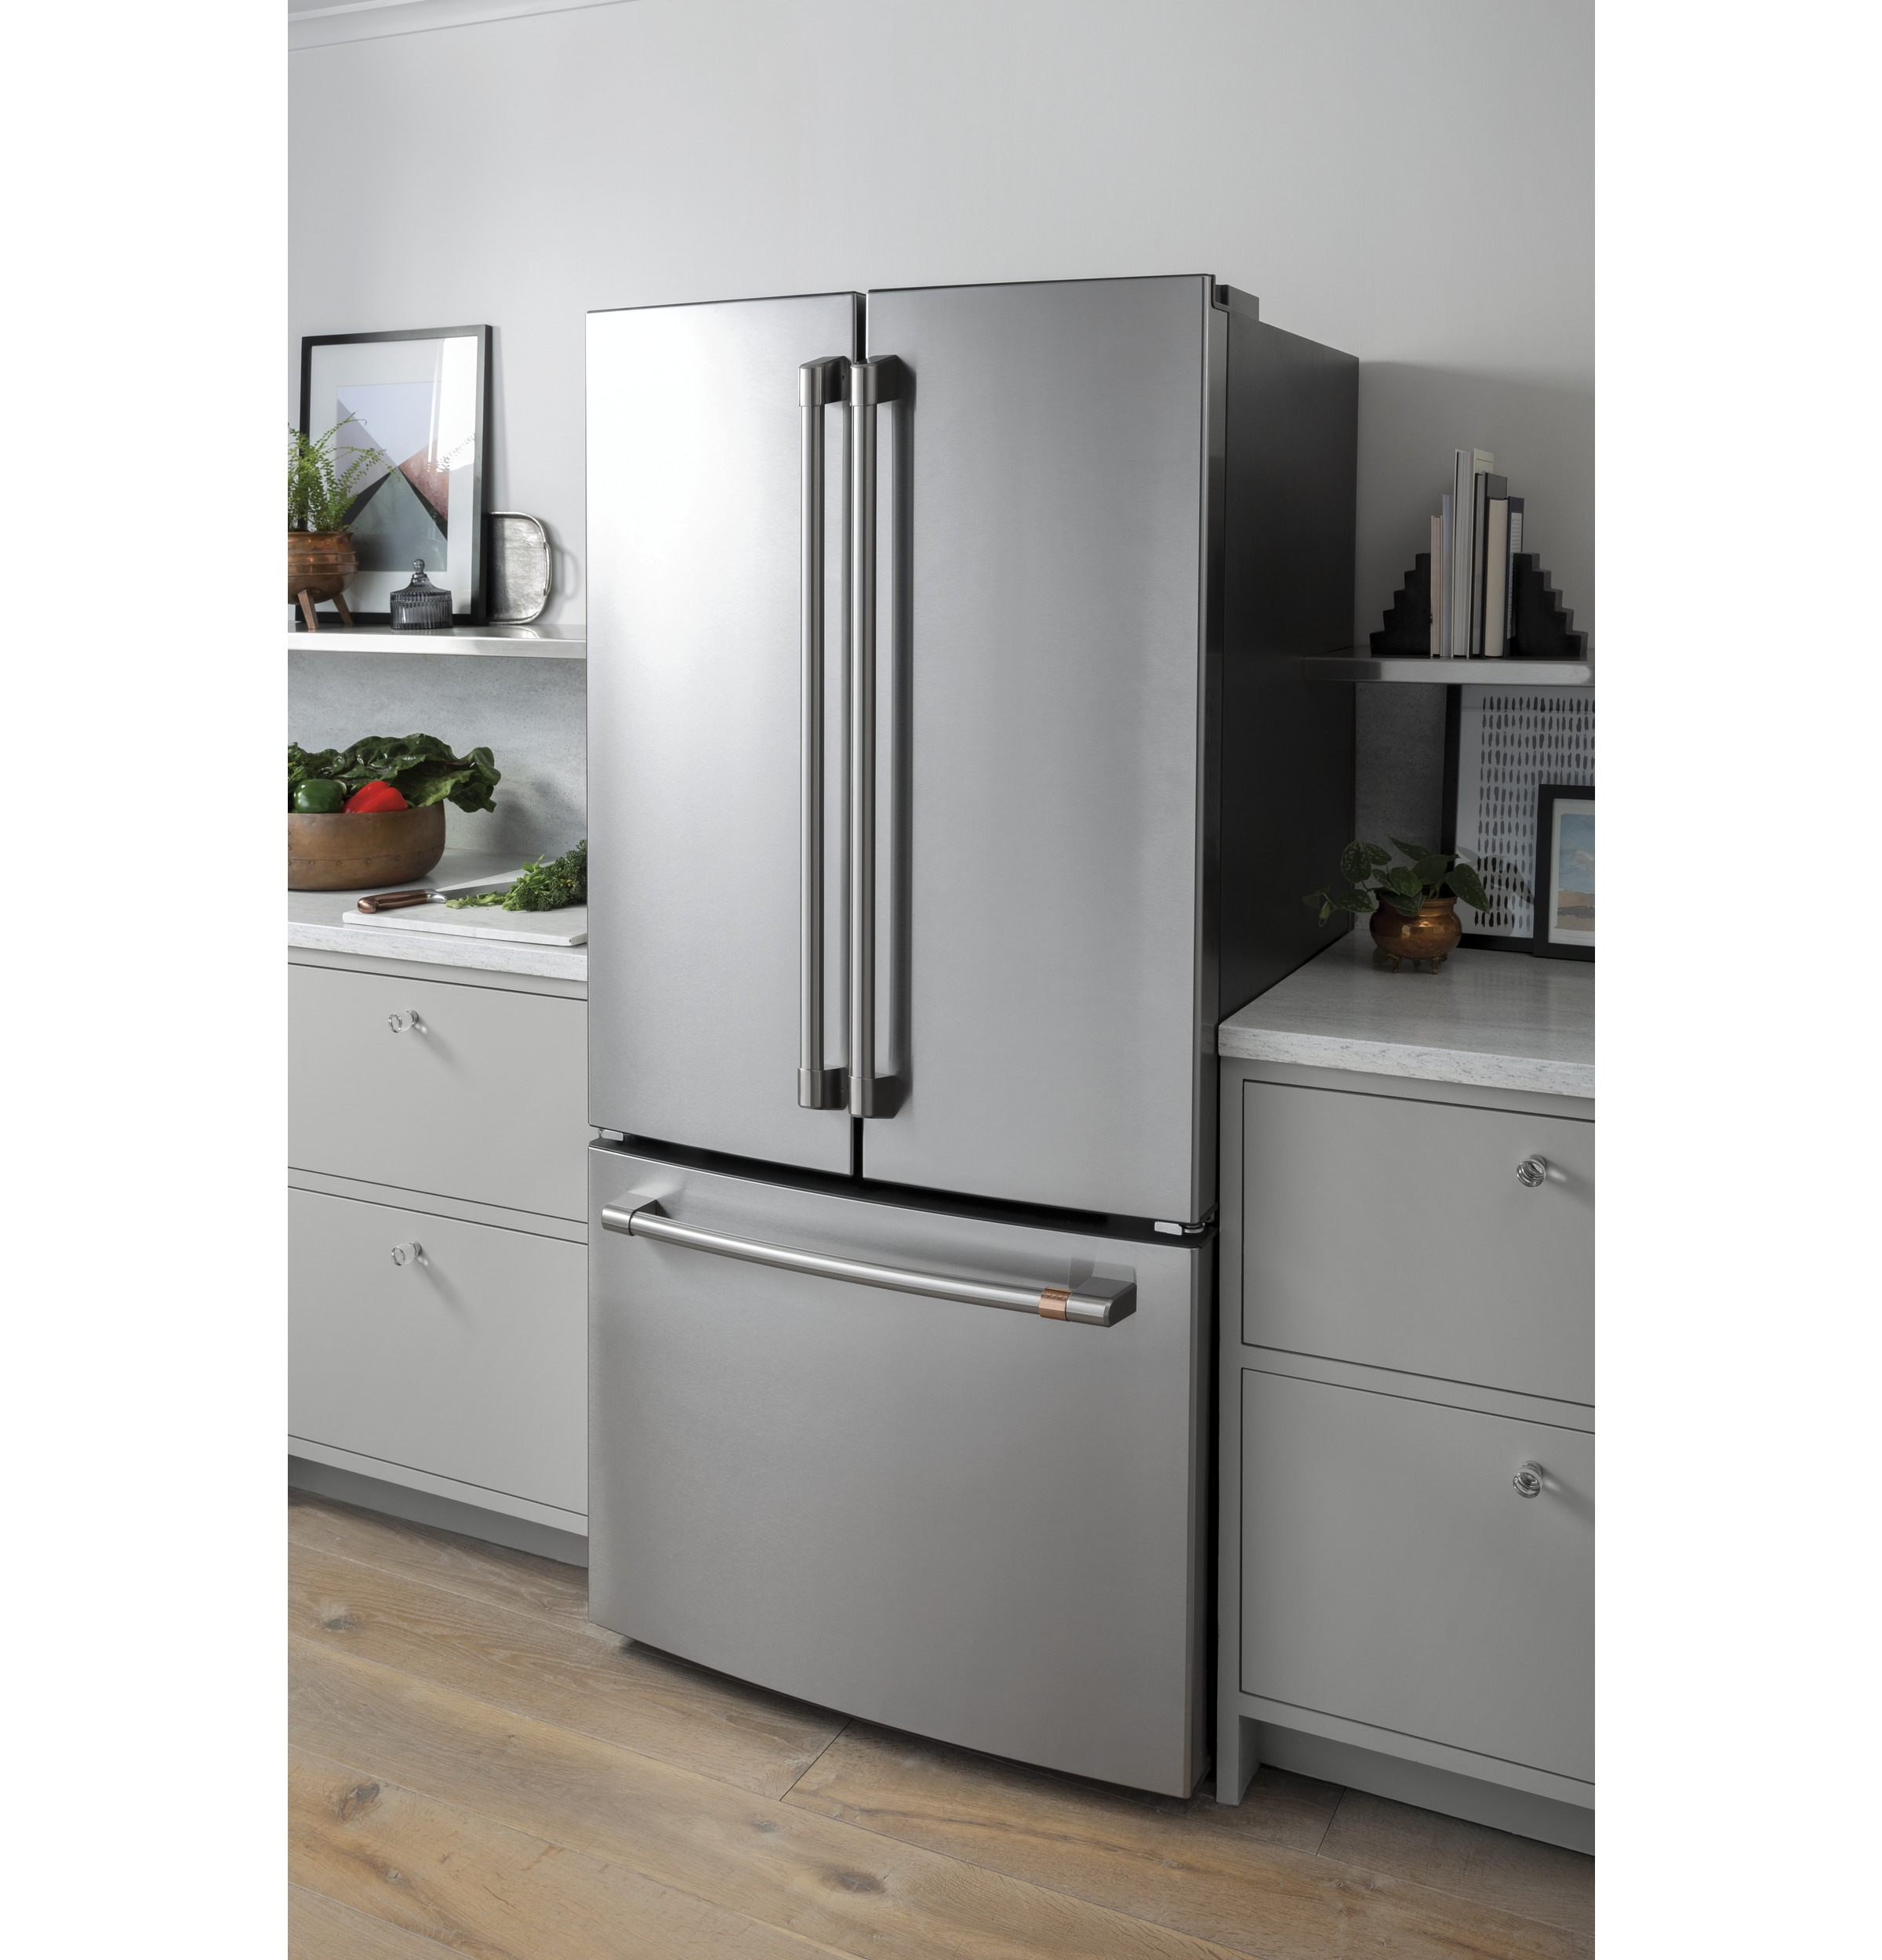 Model: CWE19SP3ND1 | Cafe Café™ ENERGY STAR® 18.6 Cu. Ft. Counter-Depth French-Door Refrigerator